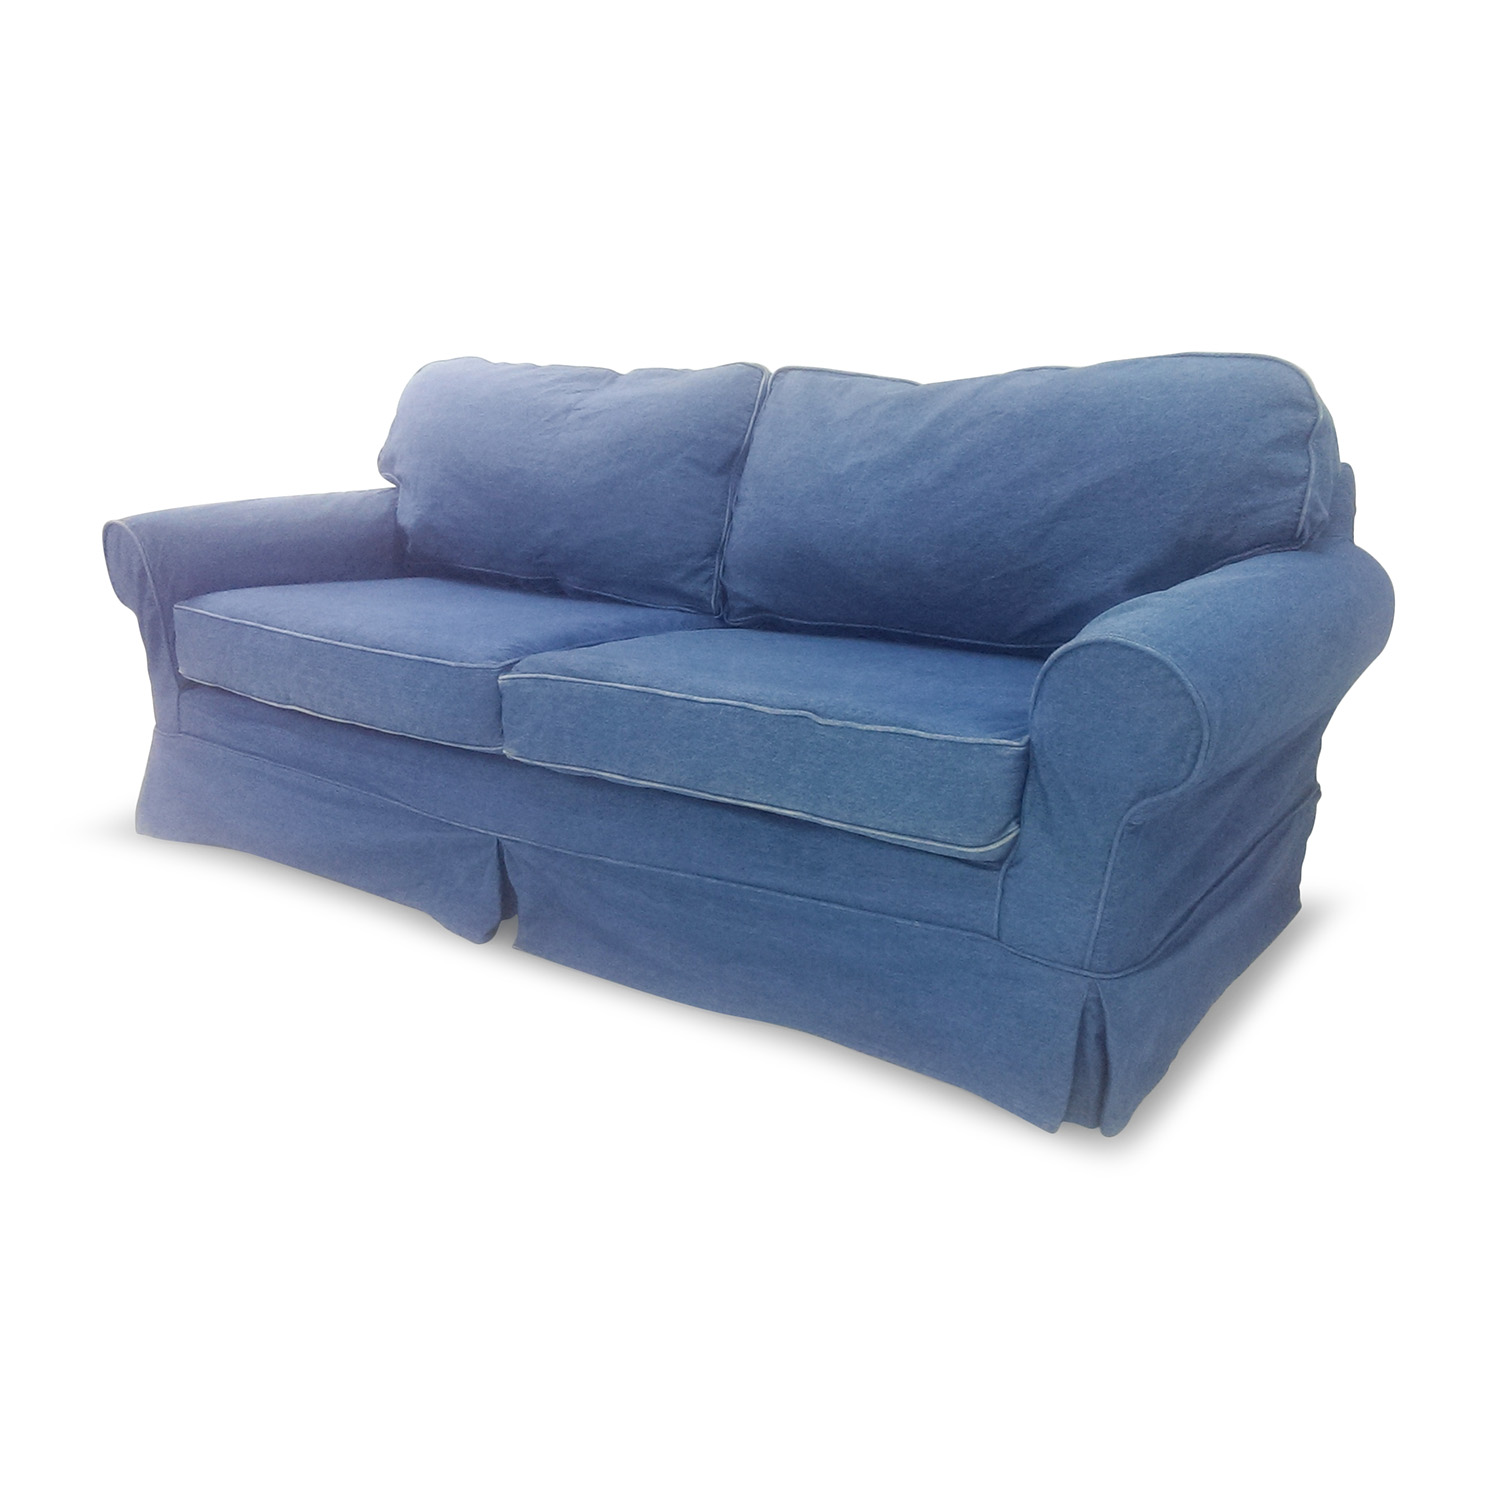 blue denim sofa bed cleaning company glasgow sofas 78 off couch thesofa